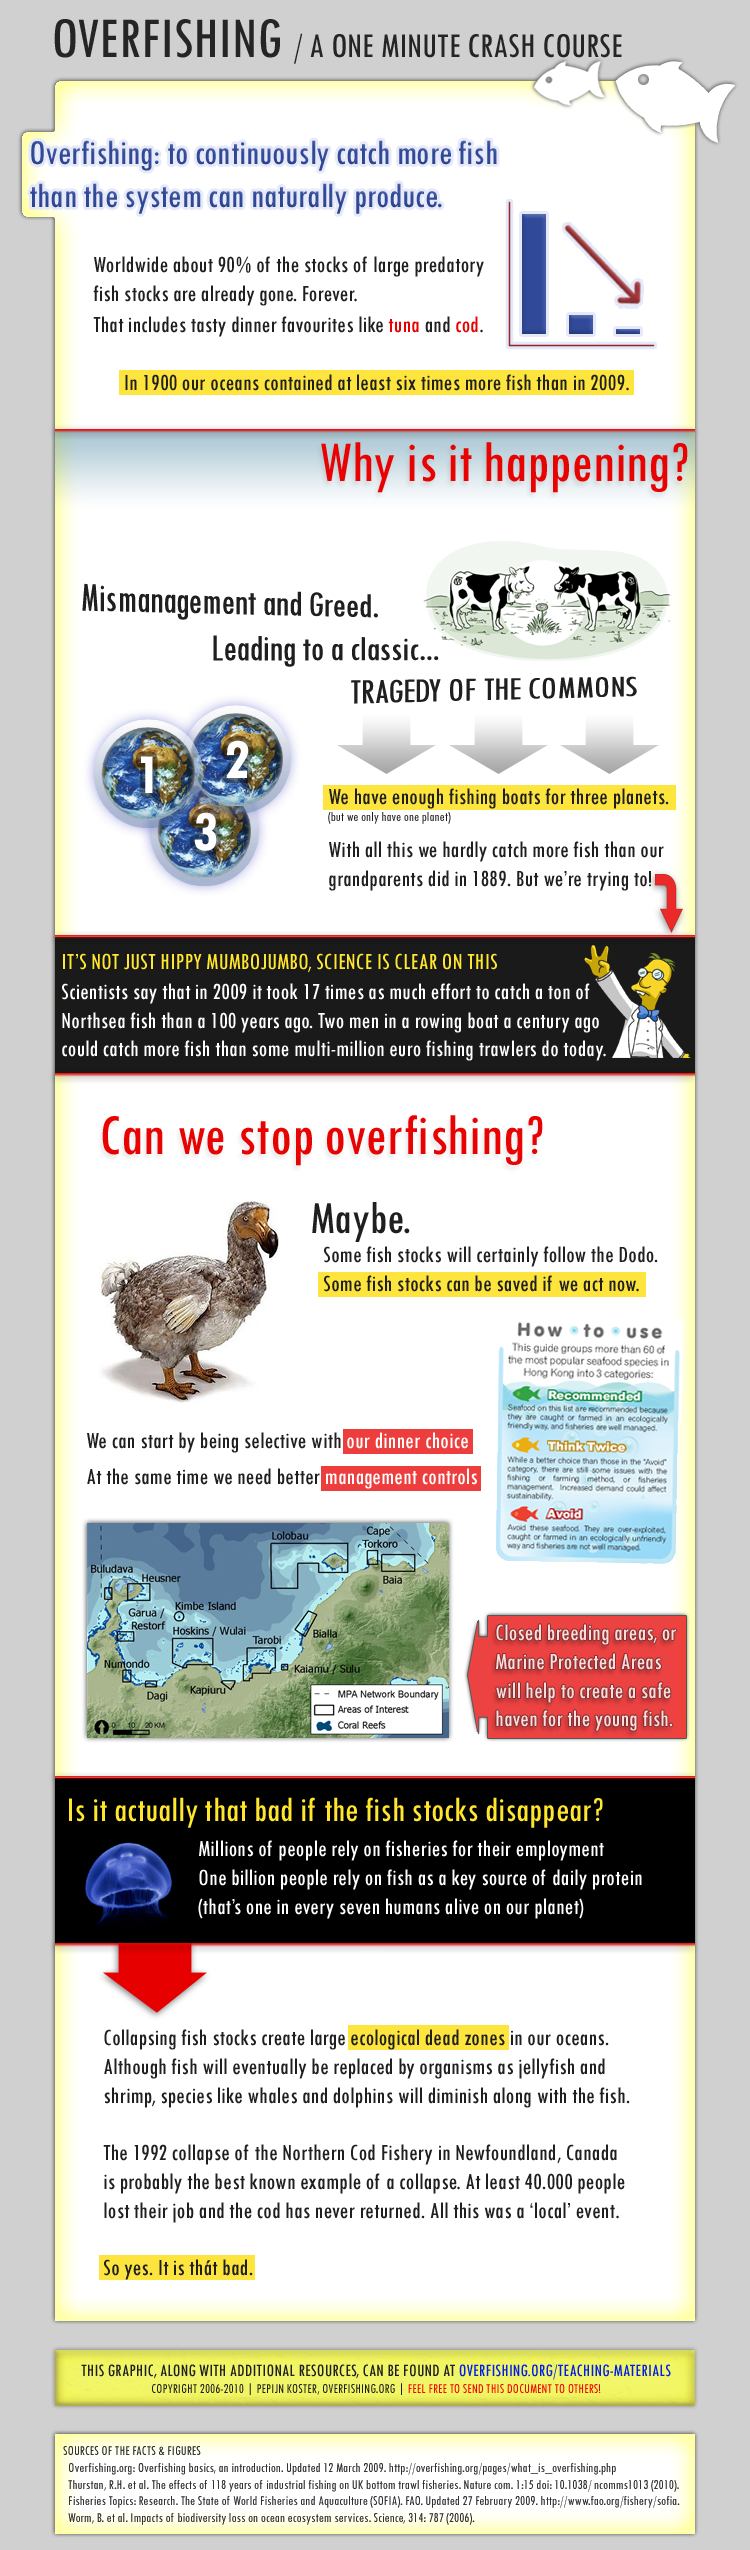 Overfishing, infographic about overfishing in one minute